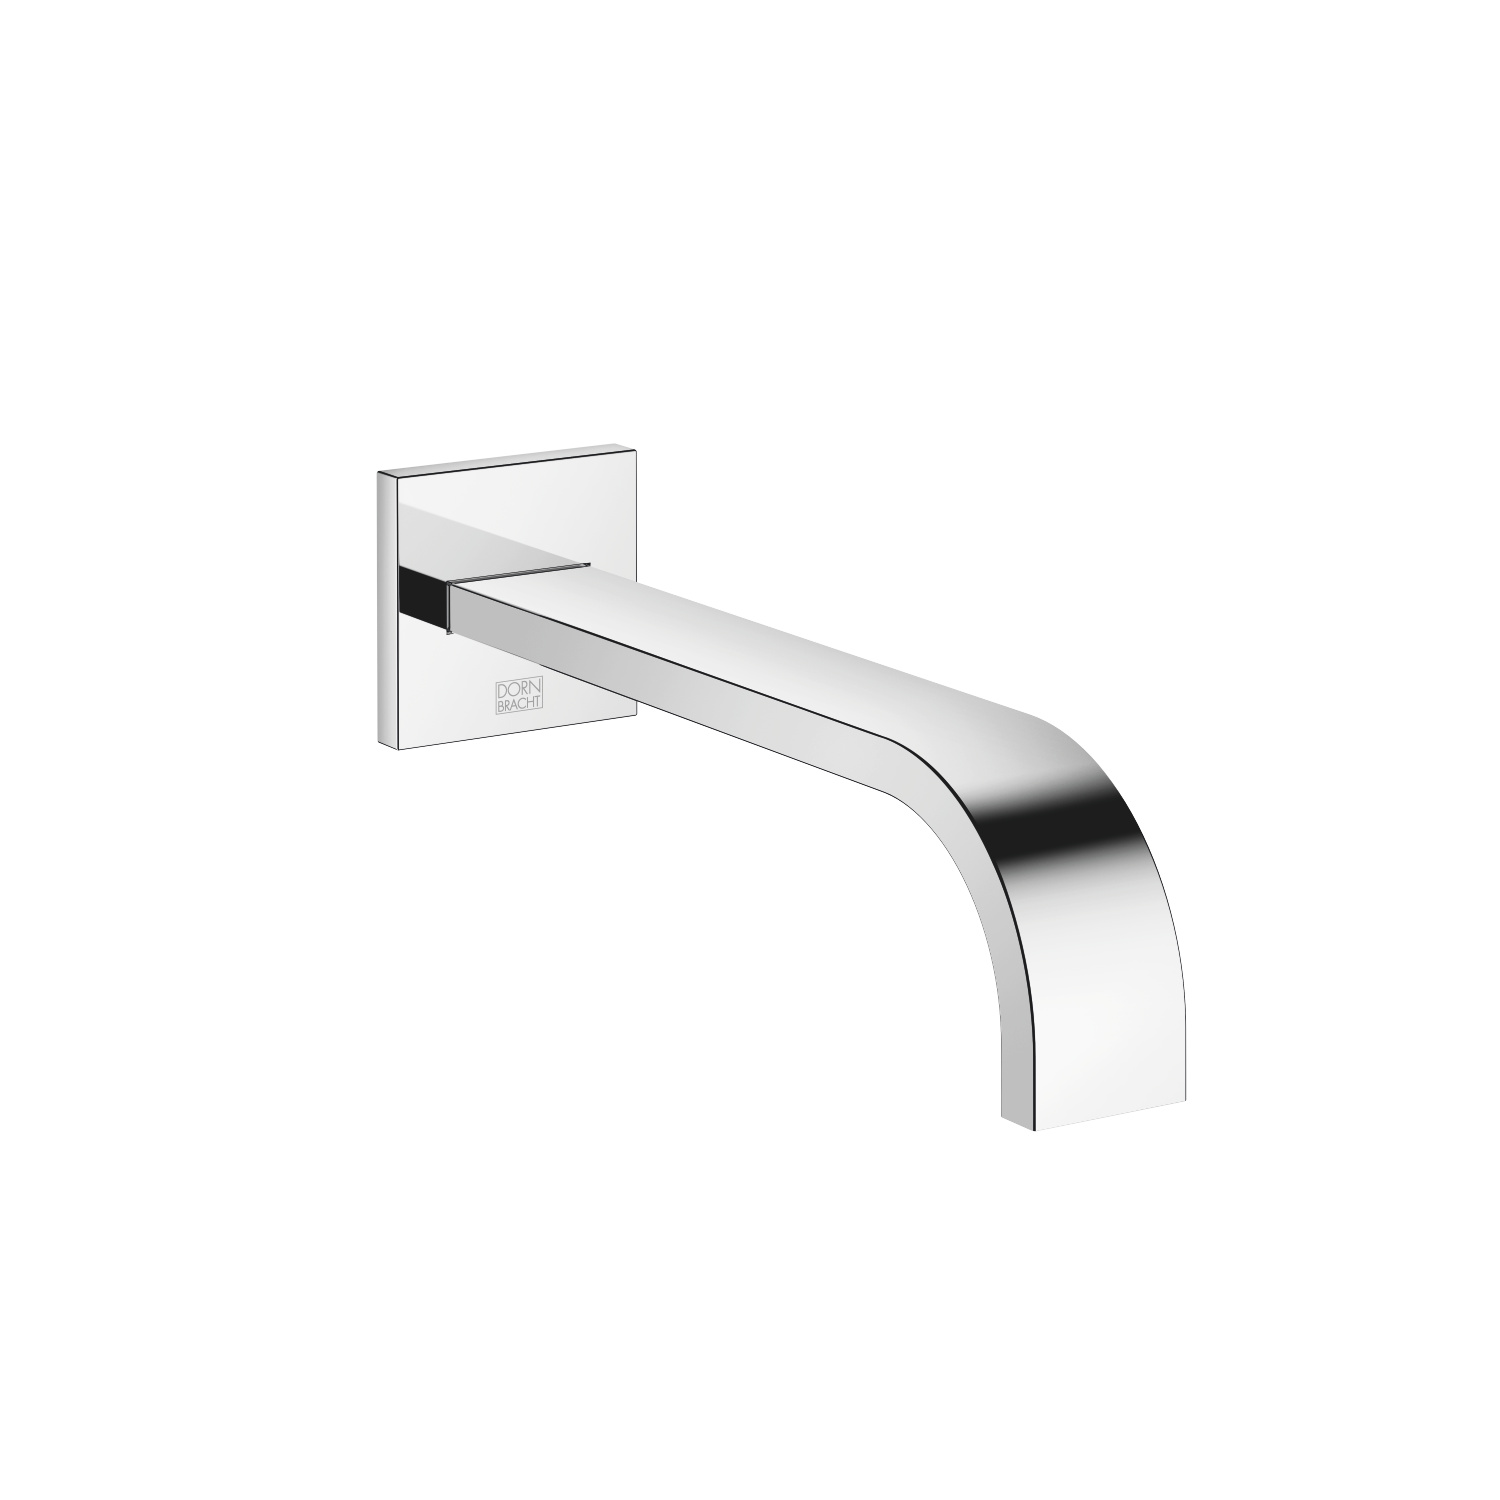 bath spout for wall mounting - polished chrome - 13 801 782-00